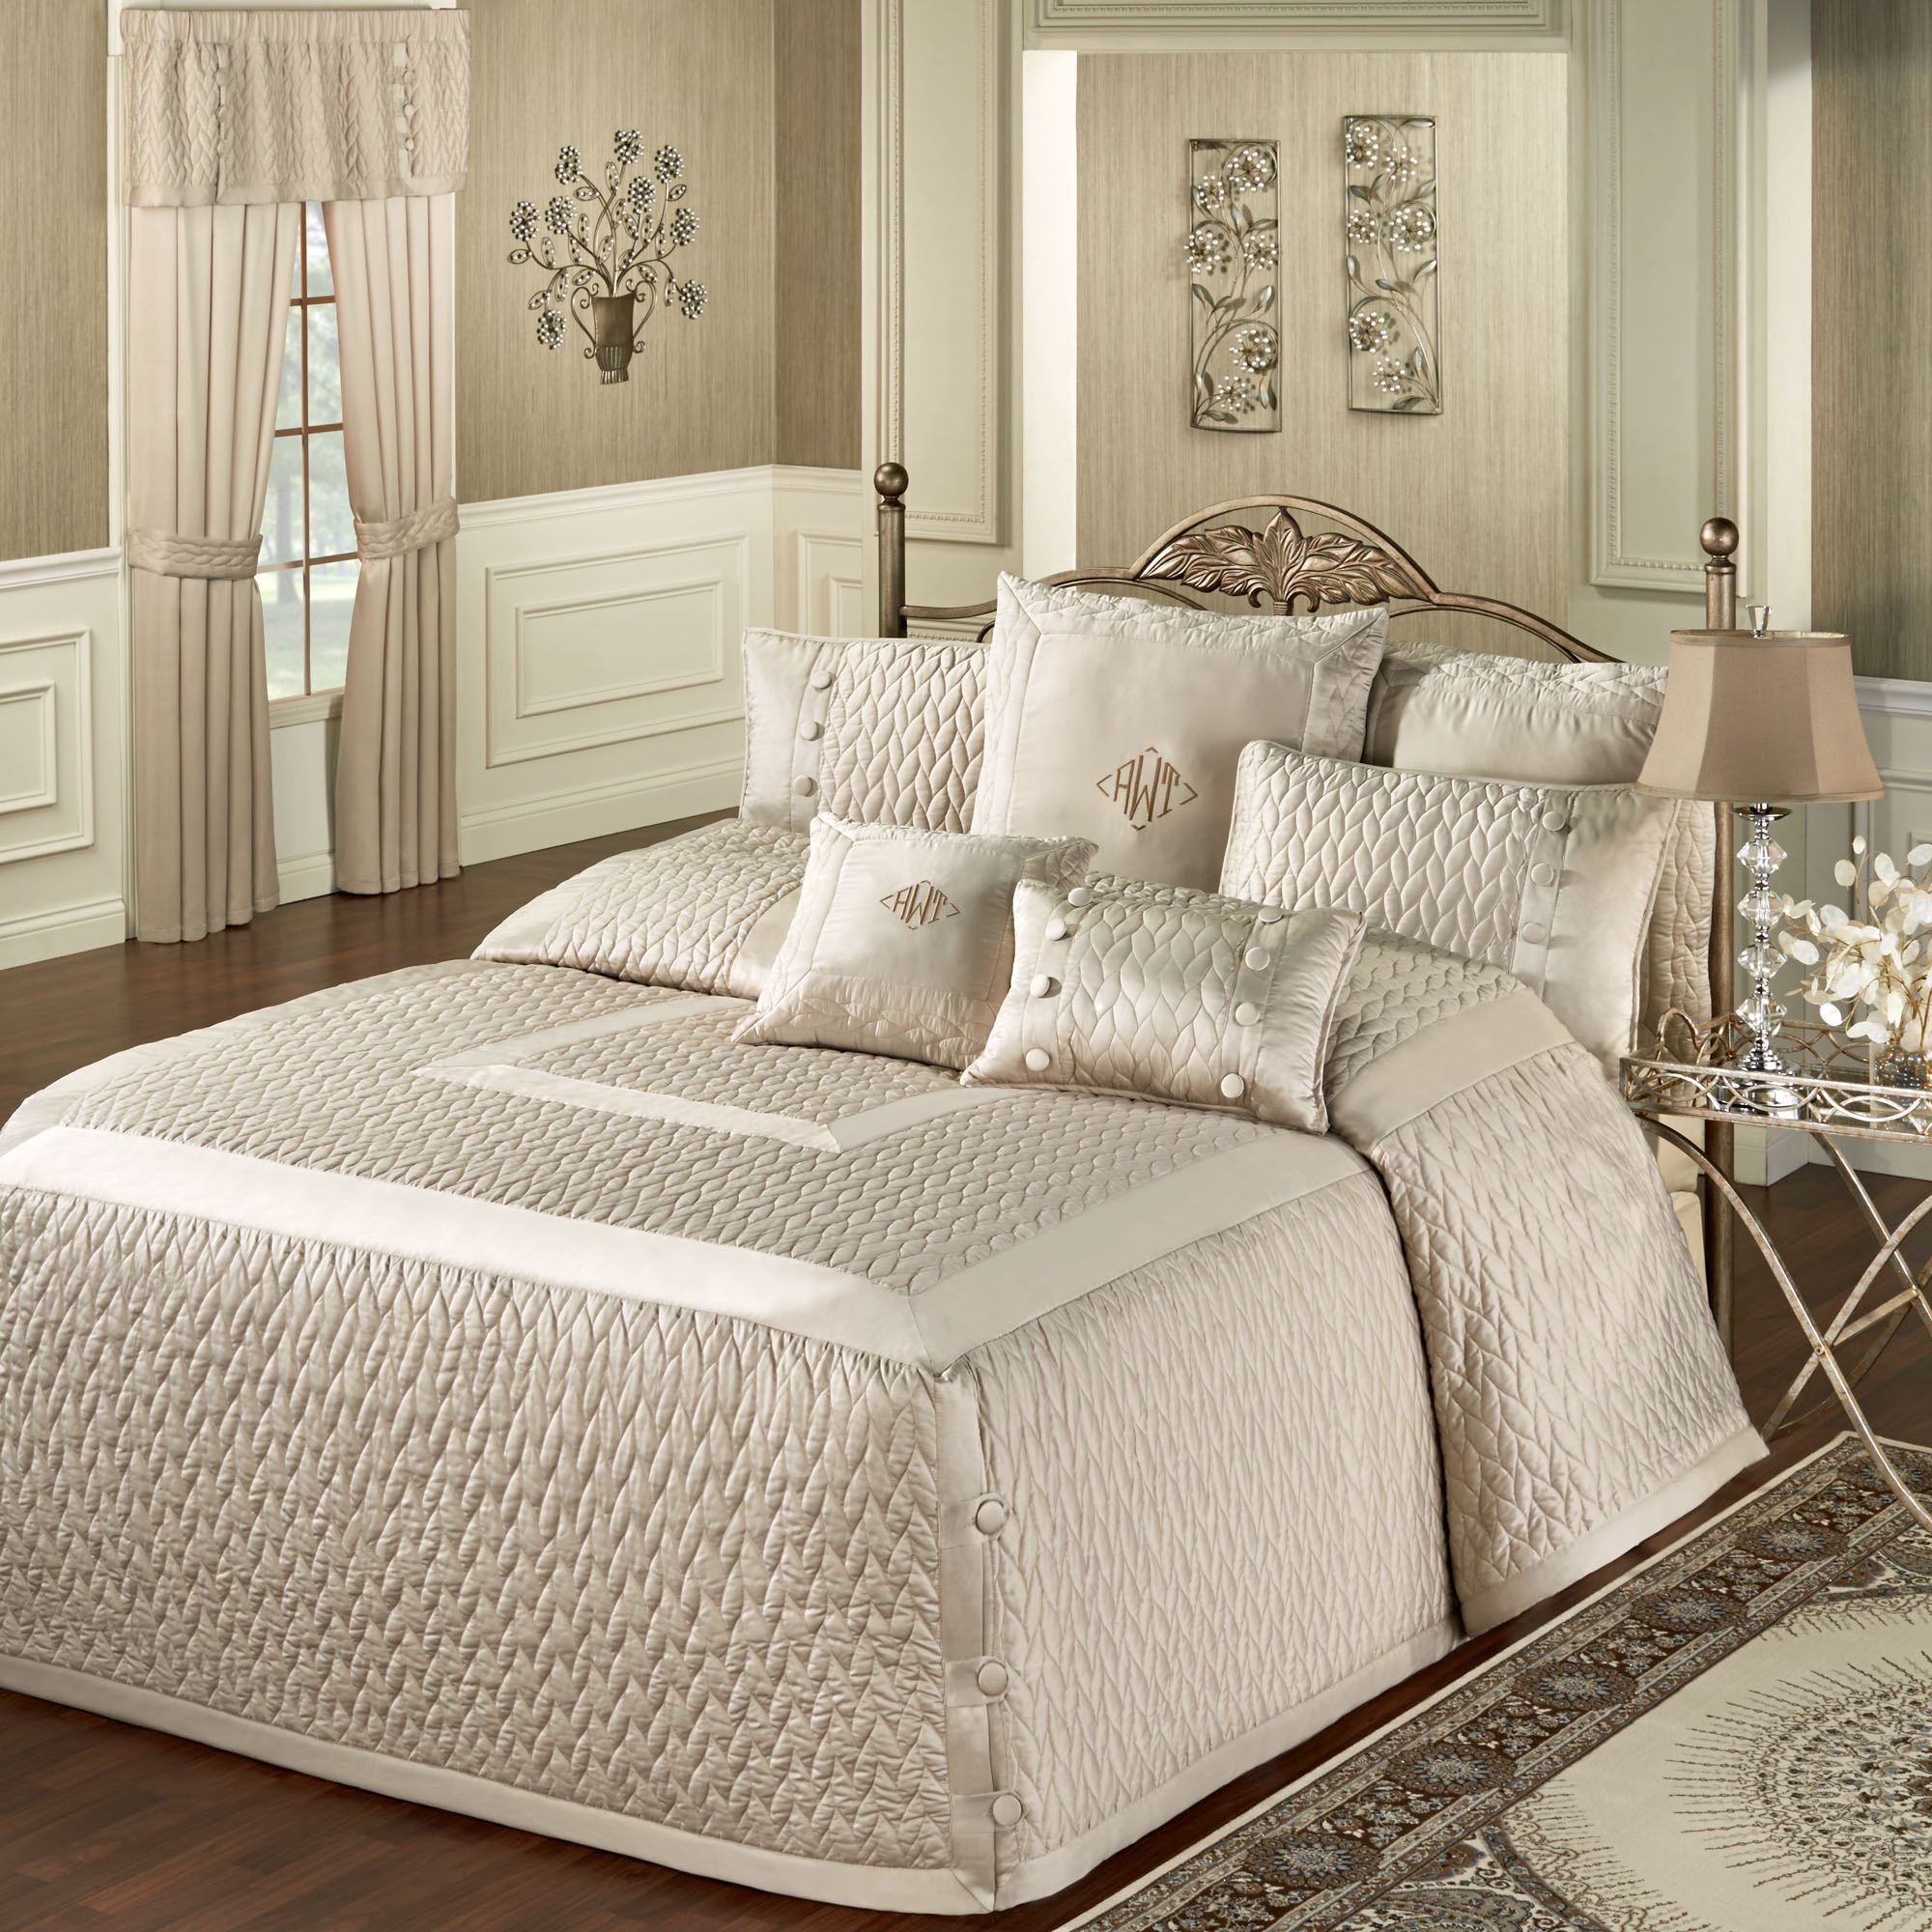 Sleep like royals with the King Charles Matelasse Bedspreads and Bedding, fashioned from the Historic Charleston Foundation Collection. Luxuriously thick, % cotton, matelasse bedspread is a woven textile with a puffed, quilted appearance; bedspread is stone-washed for softness.